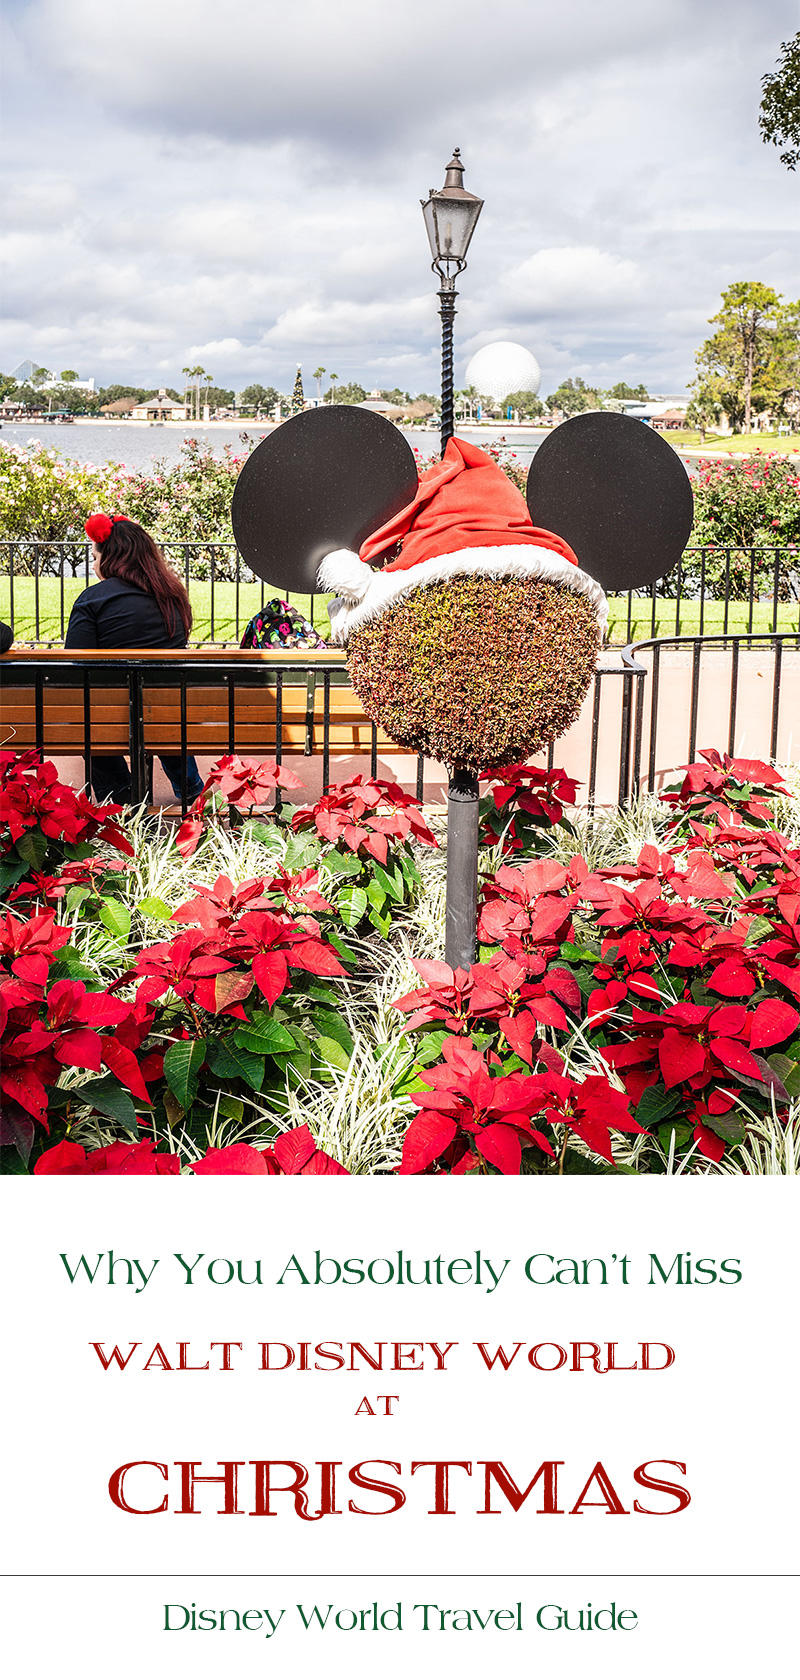 Why-You-Absolutely-Cannot-Miss-Walt-Disney-World-at-Christmas-Travel-Guide